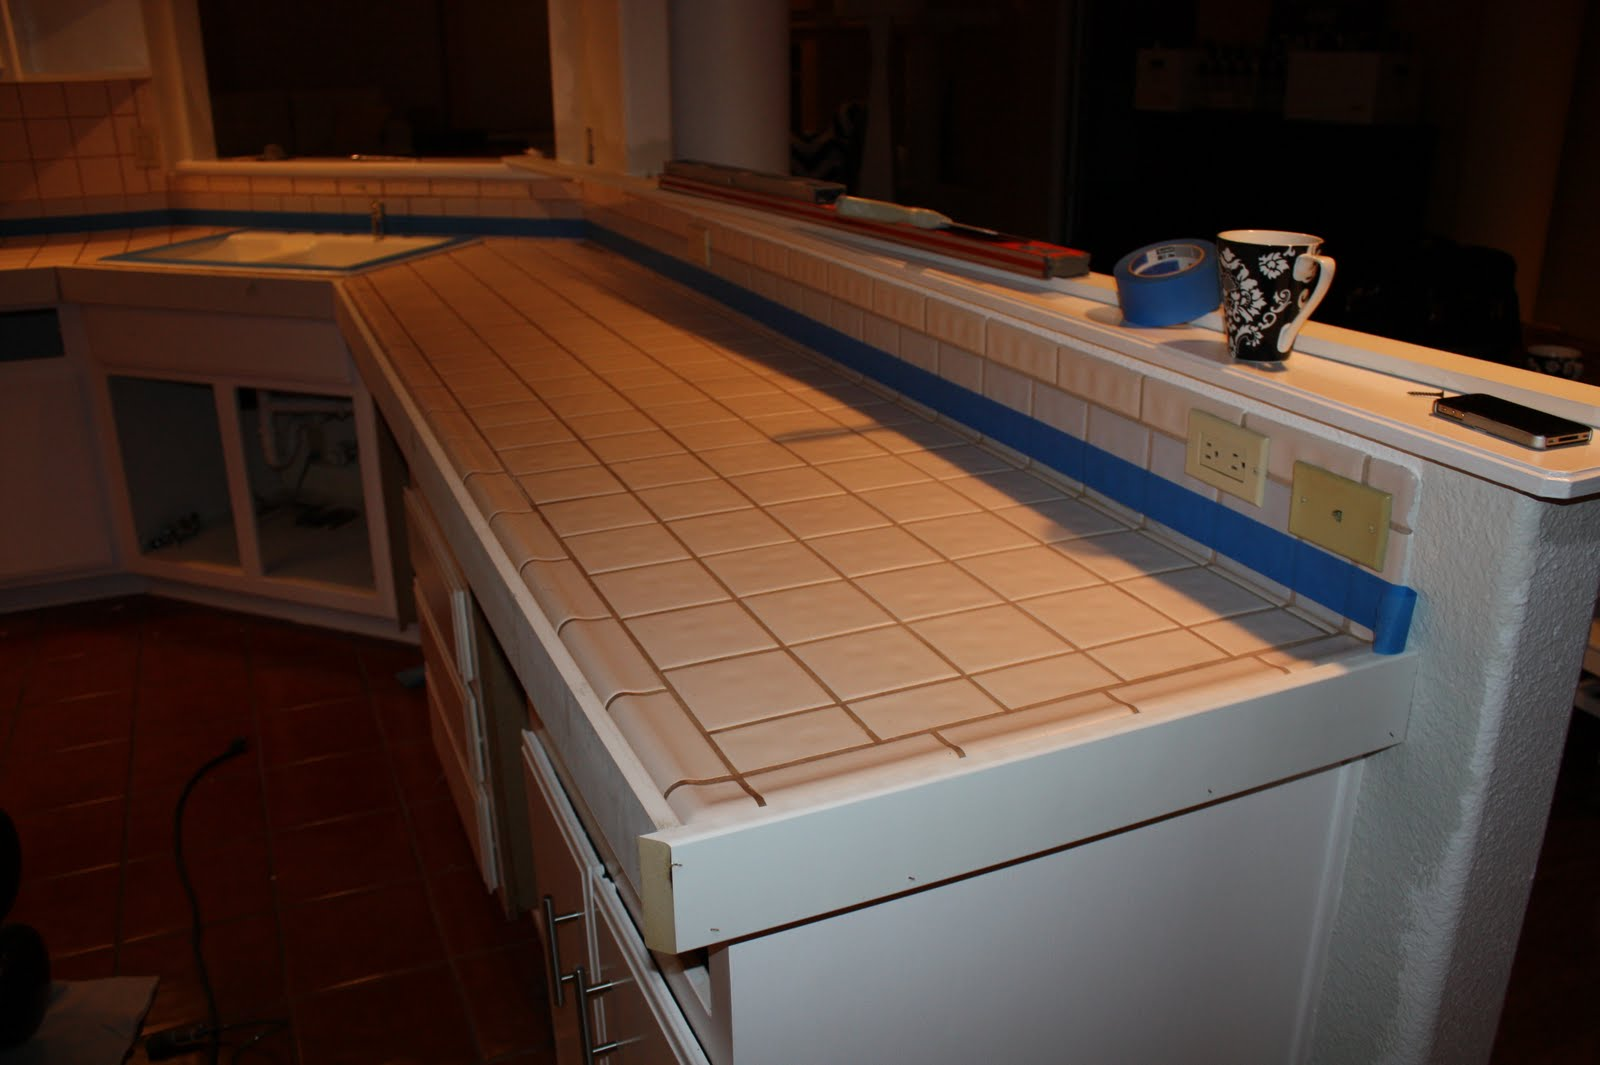 Diy Tile Kitchen Countertops Remodelaholic Quick Install Of Concrete Countertops Kitchen